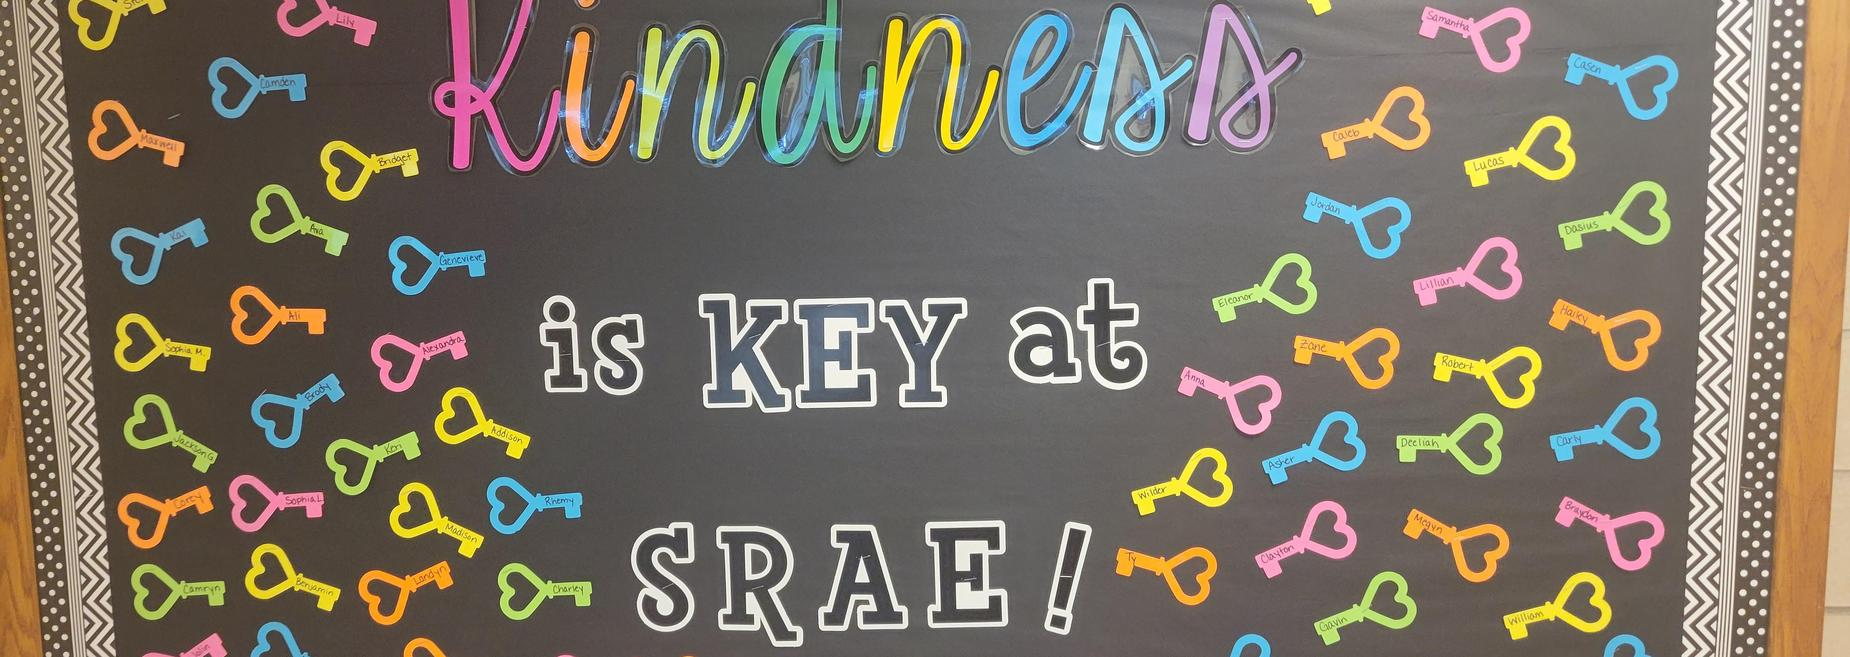 Kindness is Key at SRAE